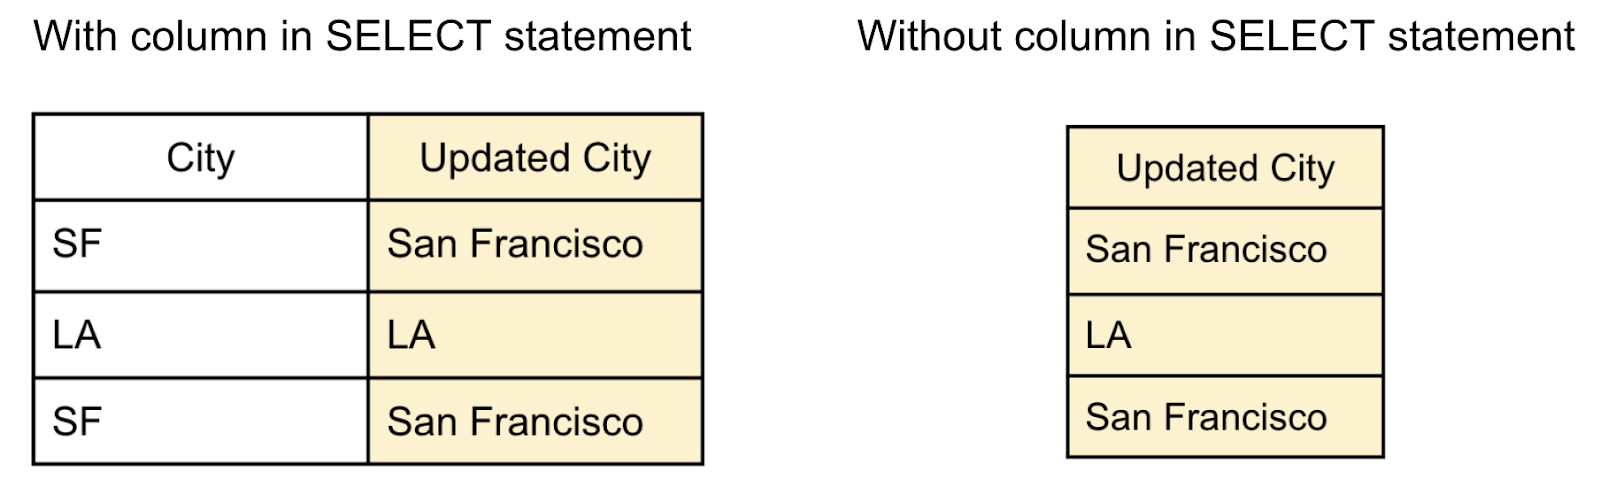 Image showing how the query results look with and without an additional column selected